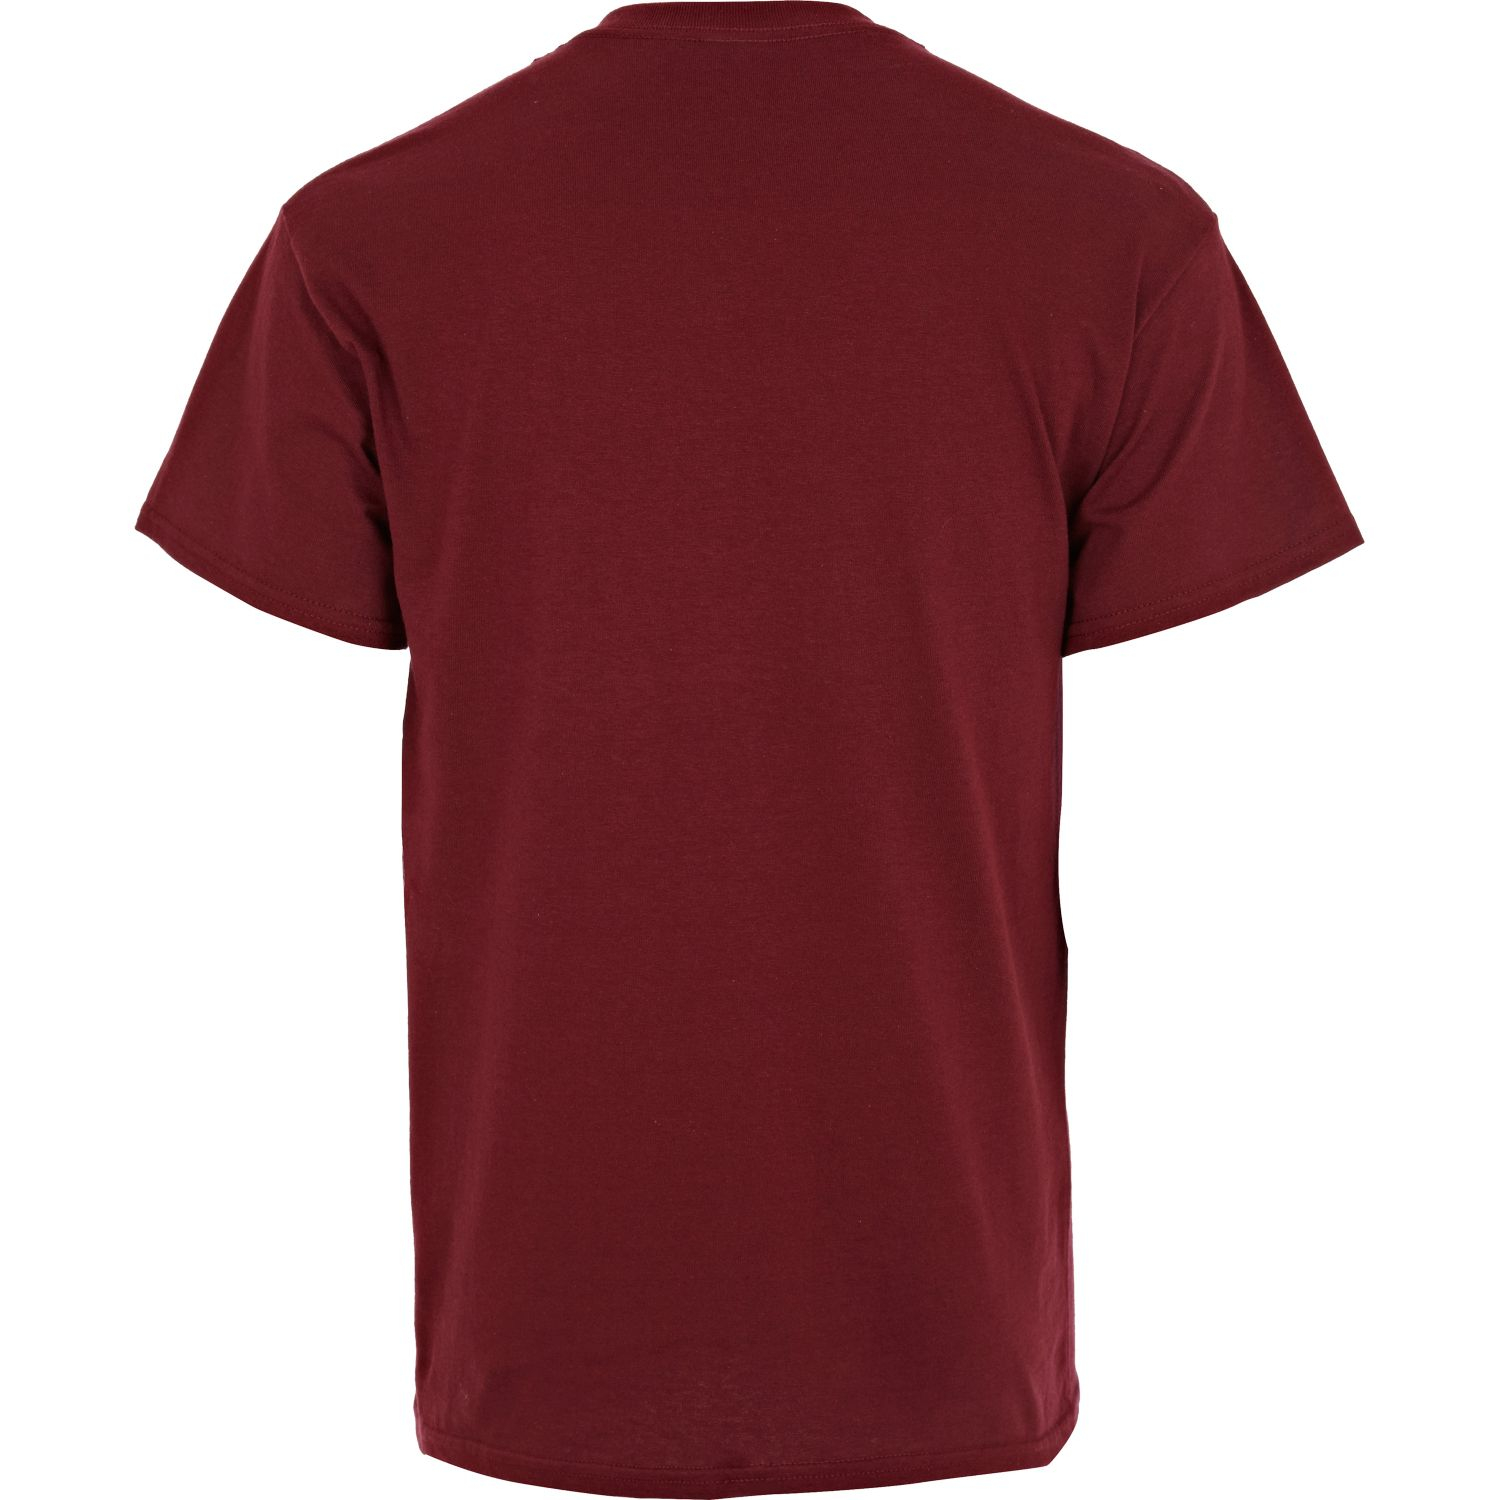 Lyst river island dark red london print tshirt in red for The red t shirt company